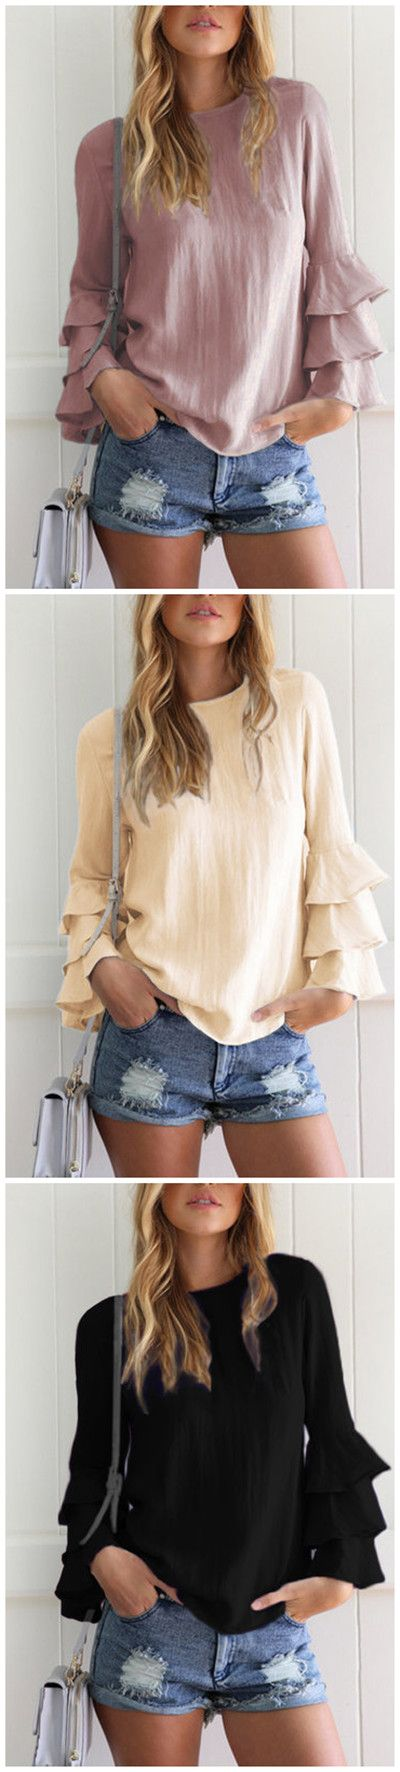 Round Neck Flared Sleeves Blouse